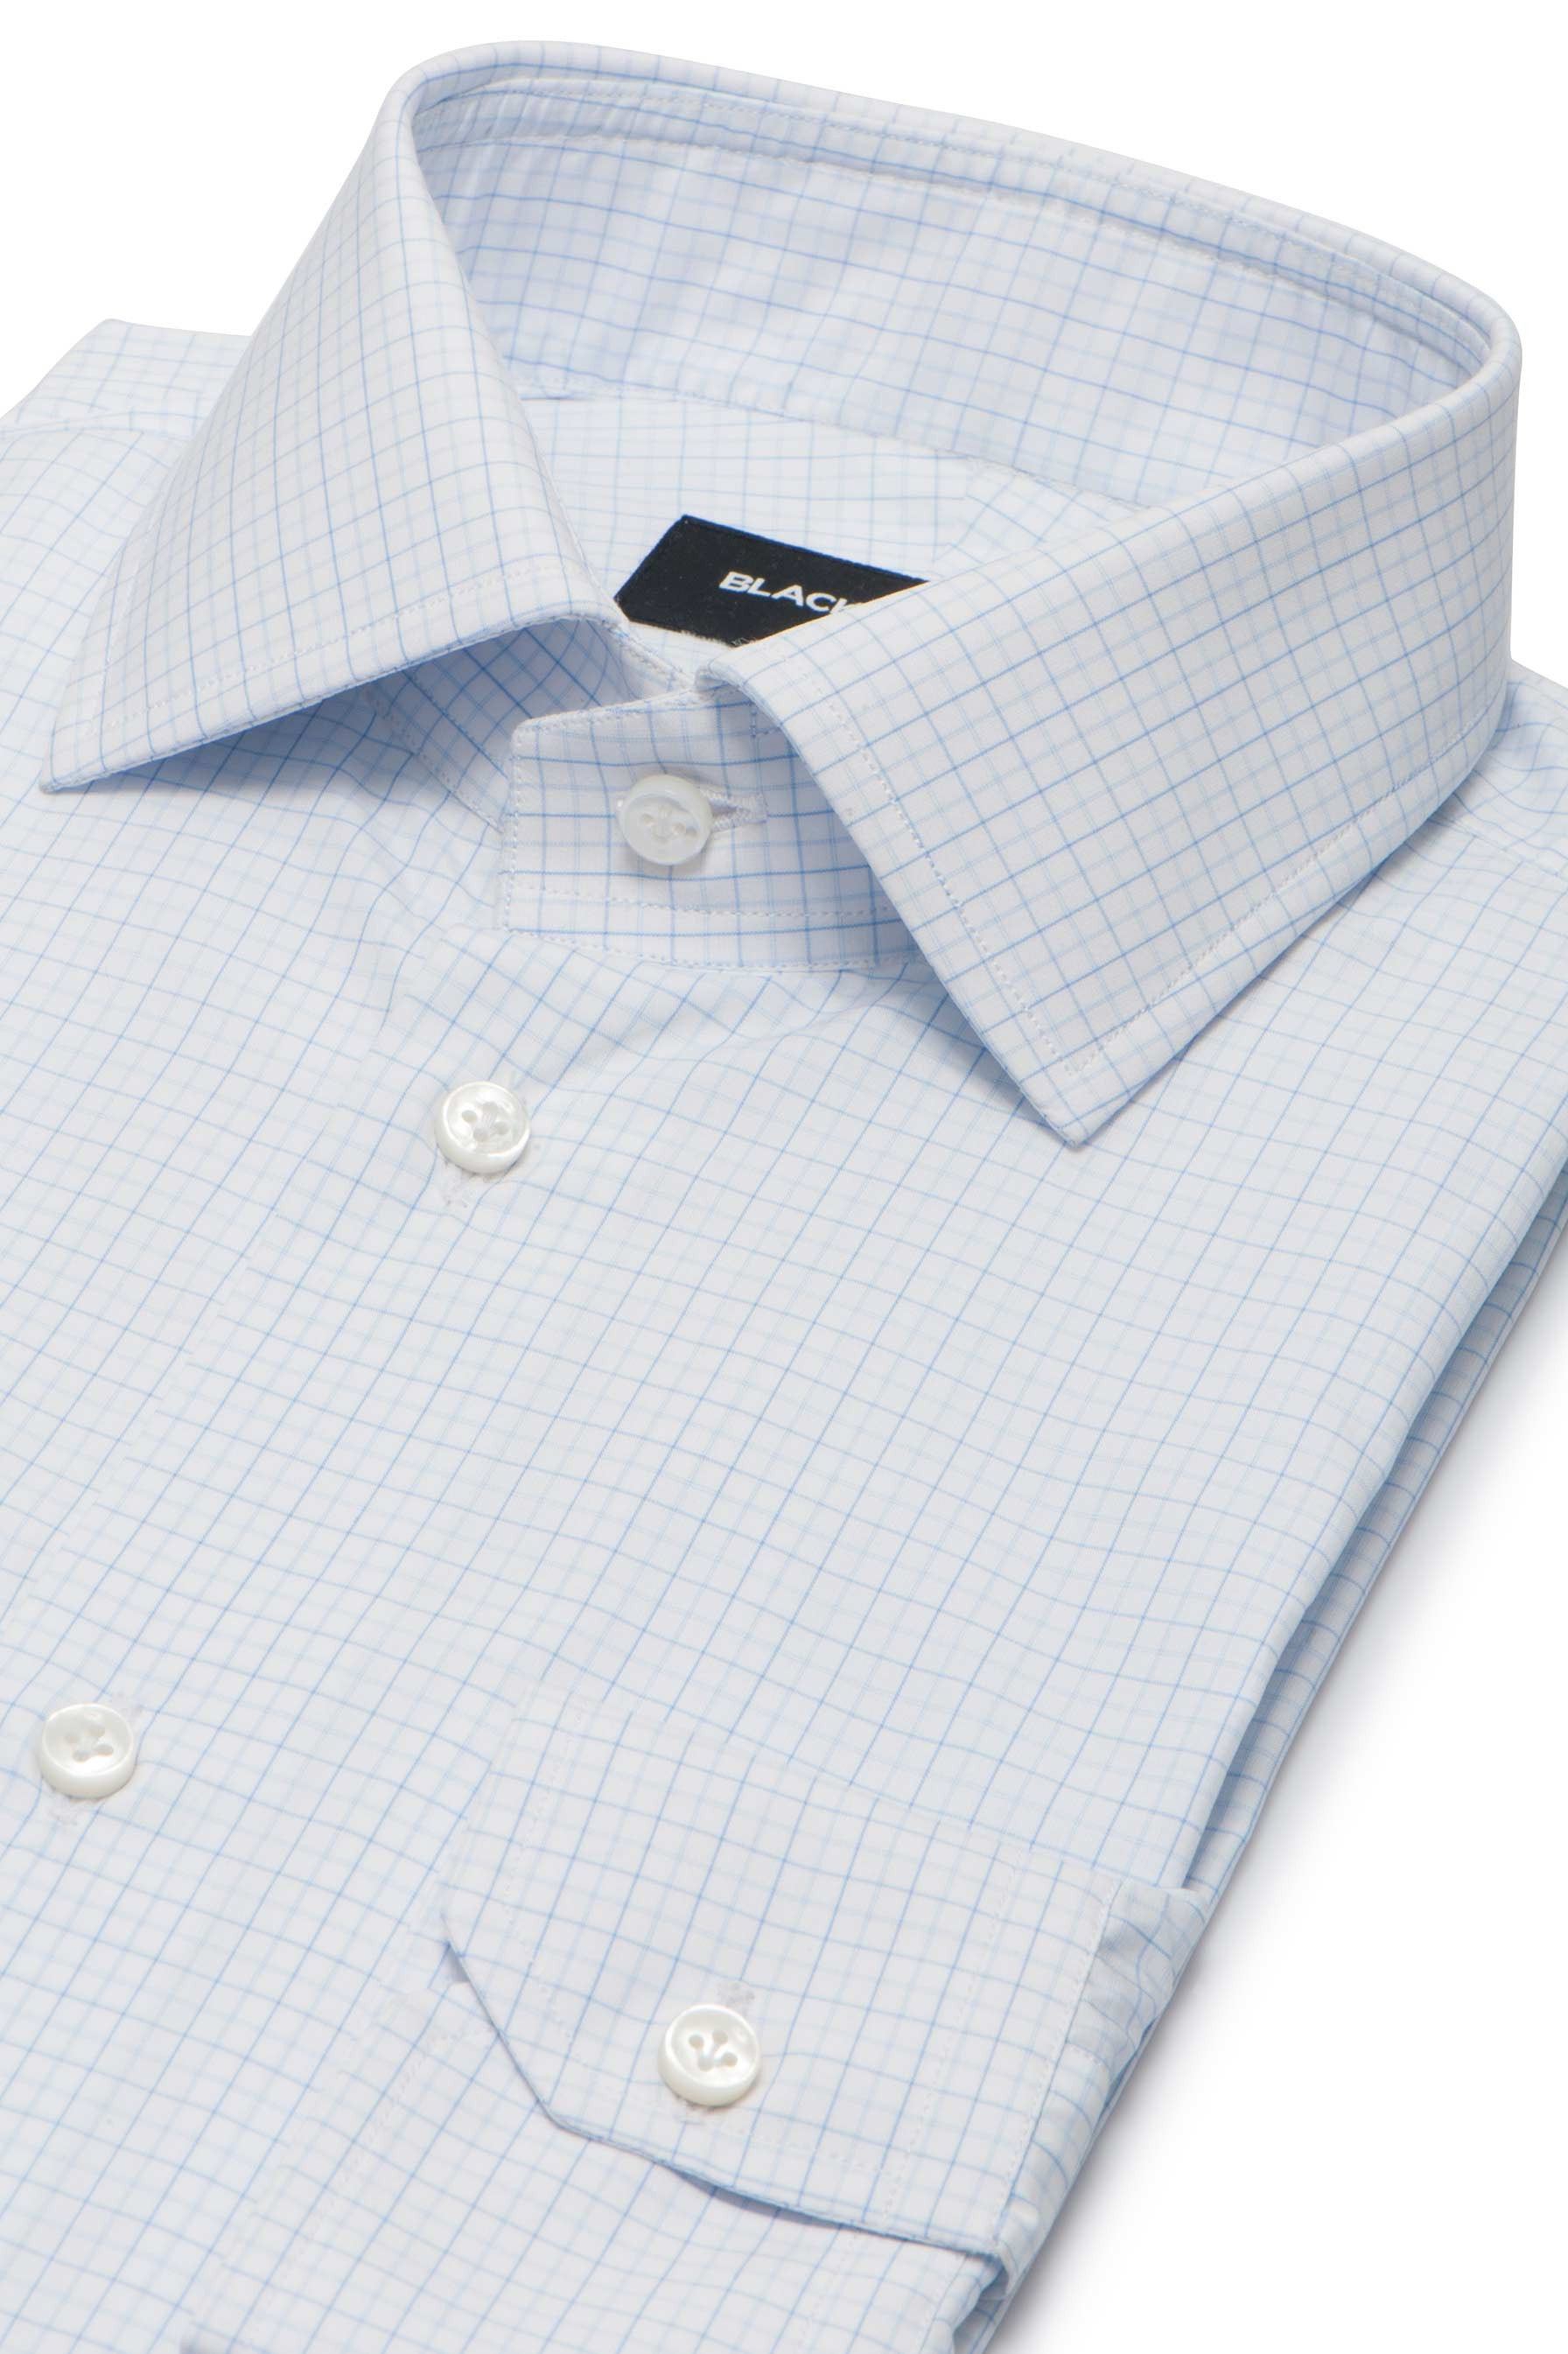 Light Blue Check Dress Shirt - Thomas Mason Goldline 140s